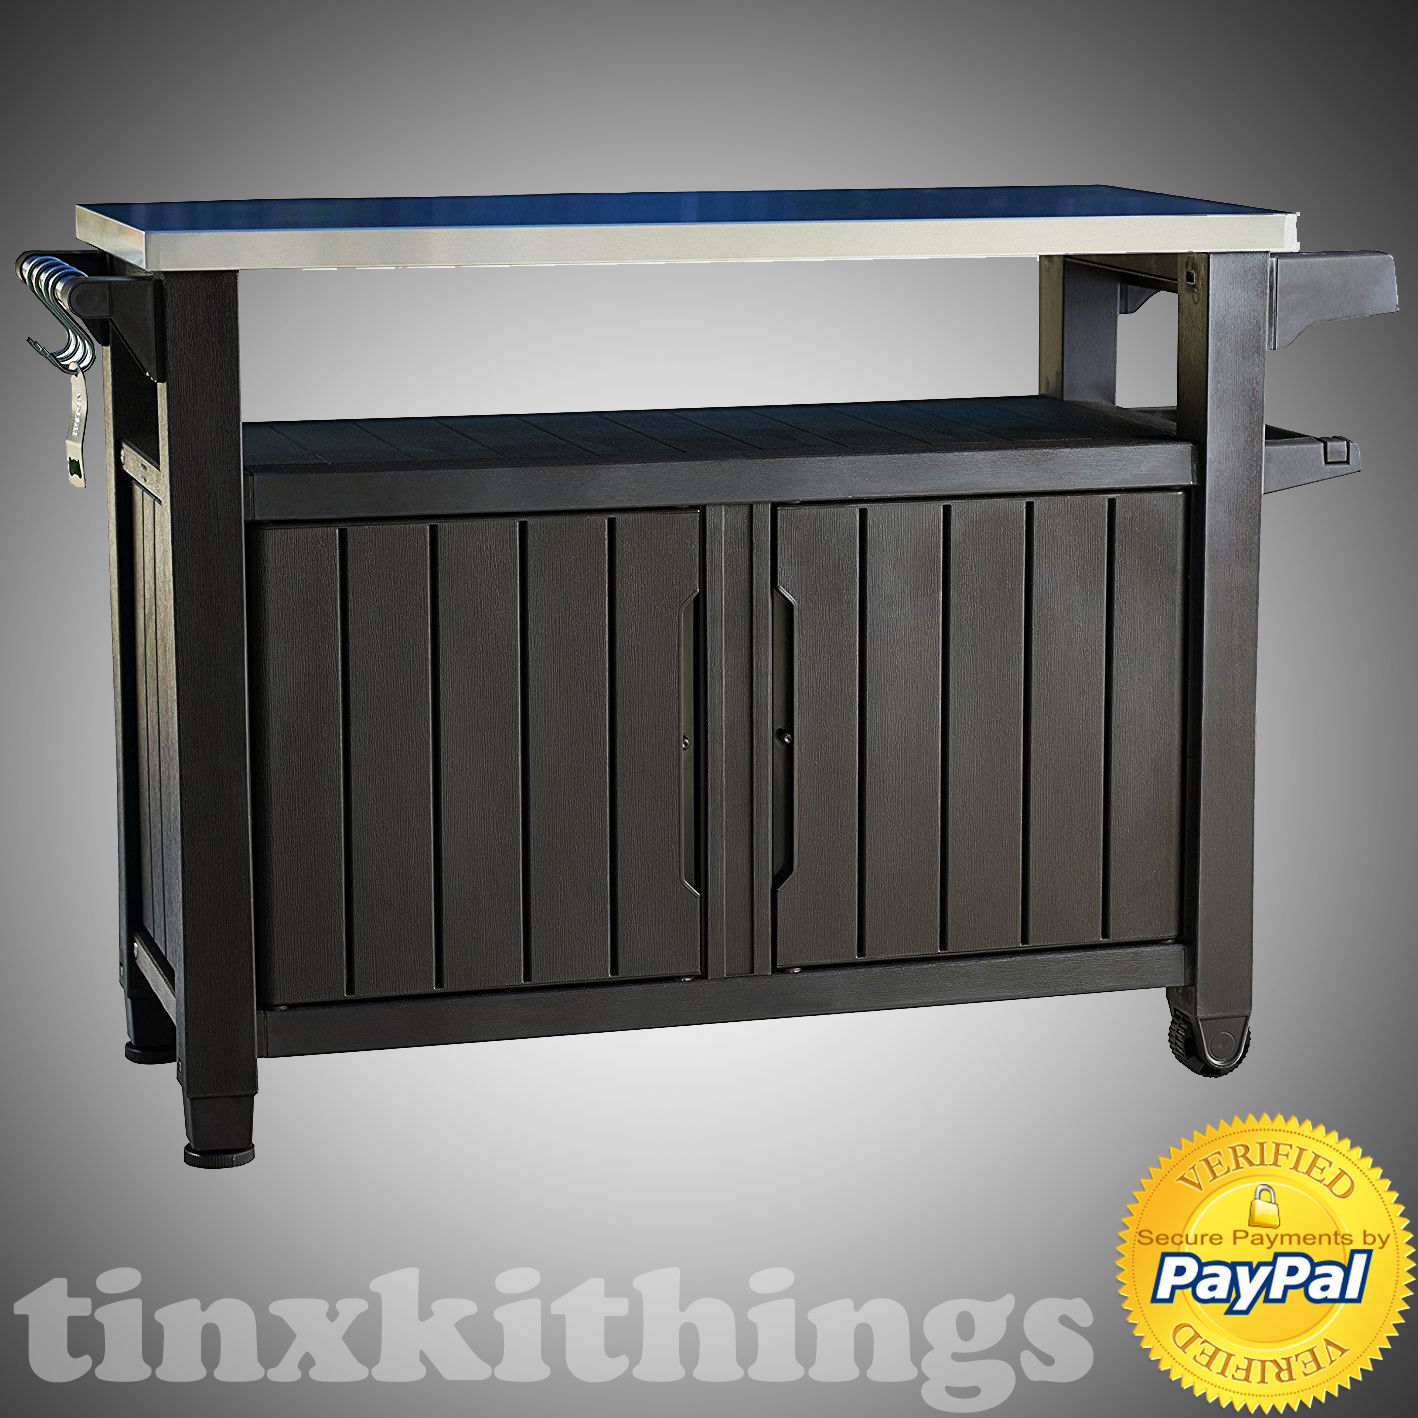 Mobile BBQ Food Serving Table Shelves Storage Cabinet Metal Top In Out Door Cart 1